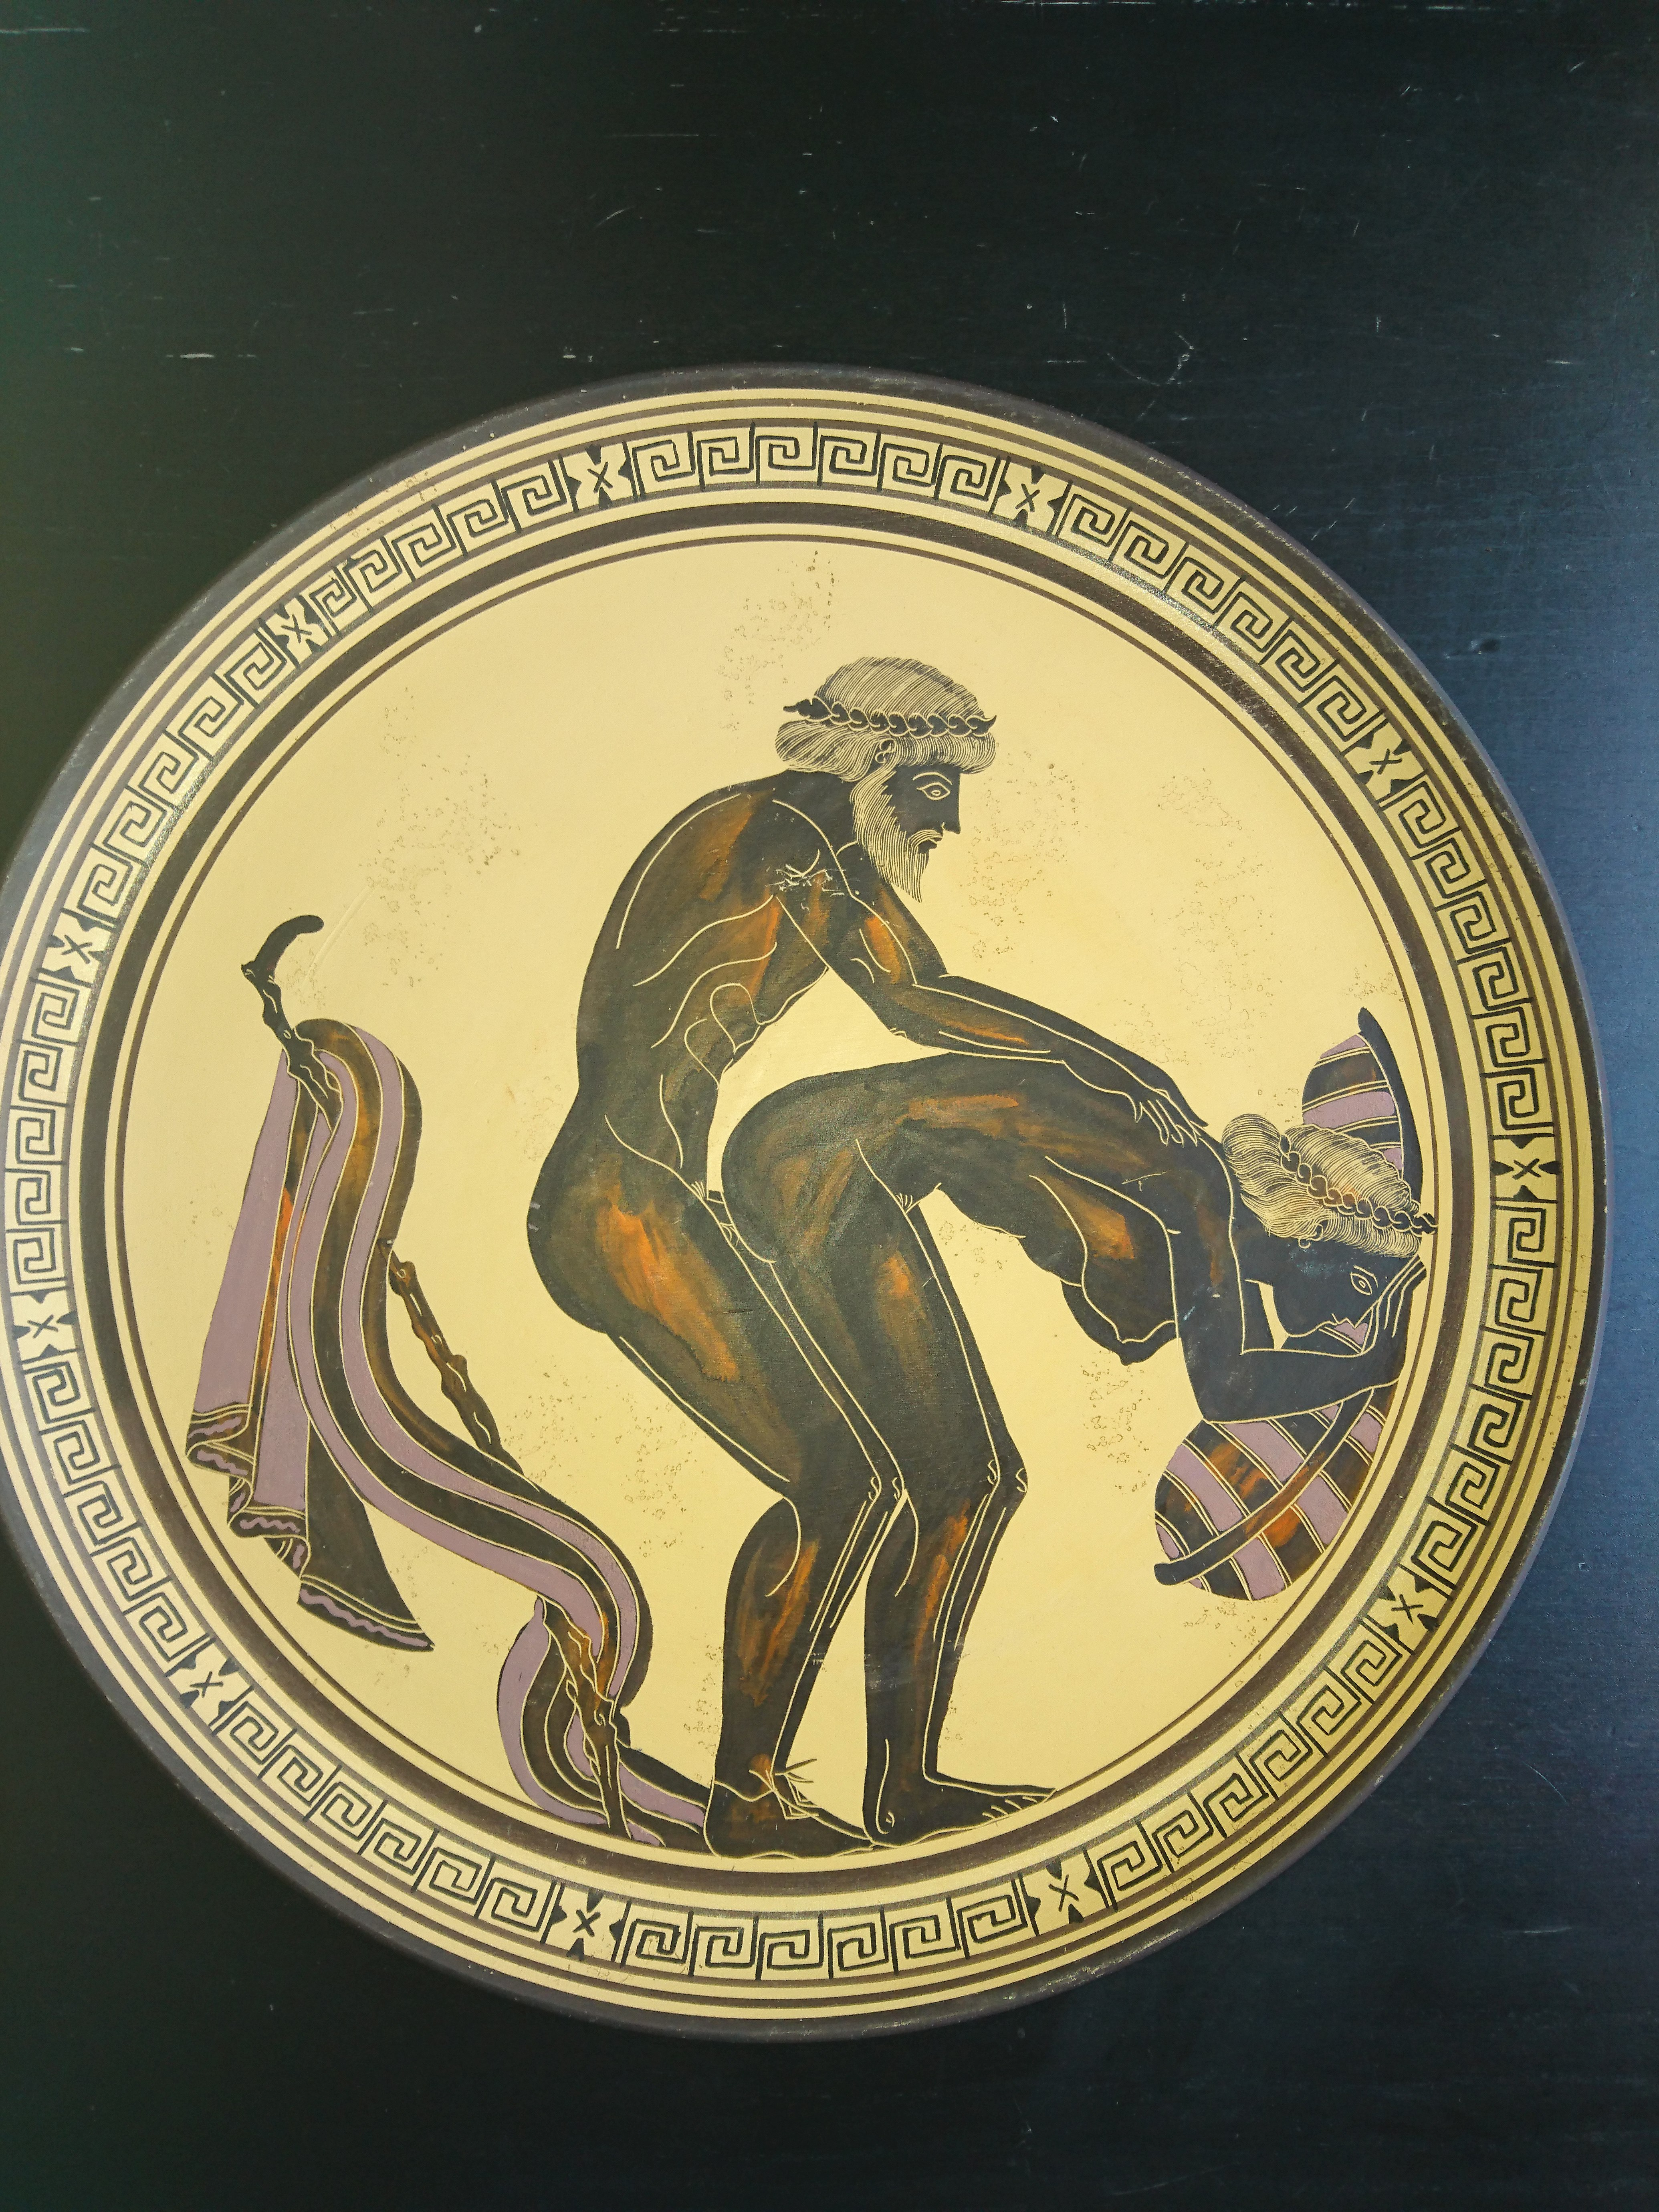 FileAncient Attica Ceramic Plate with Satyr 550 BC.JPG & File:Ancient Attica Ceramic Plate with Satyr 550 BC.JPG ...